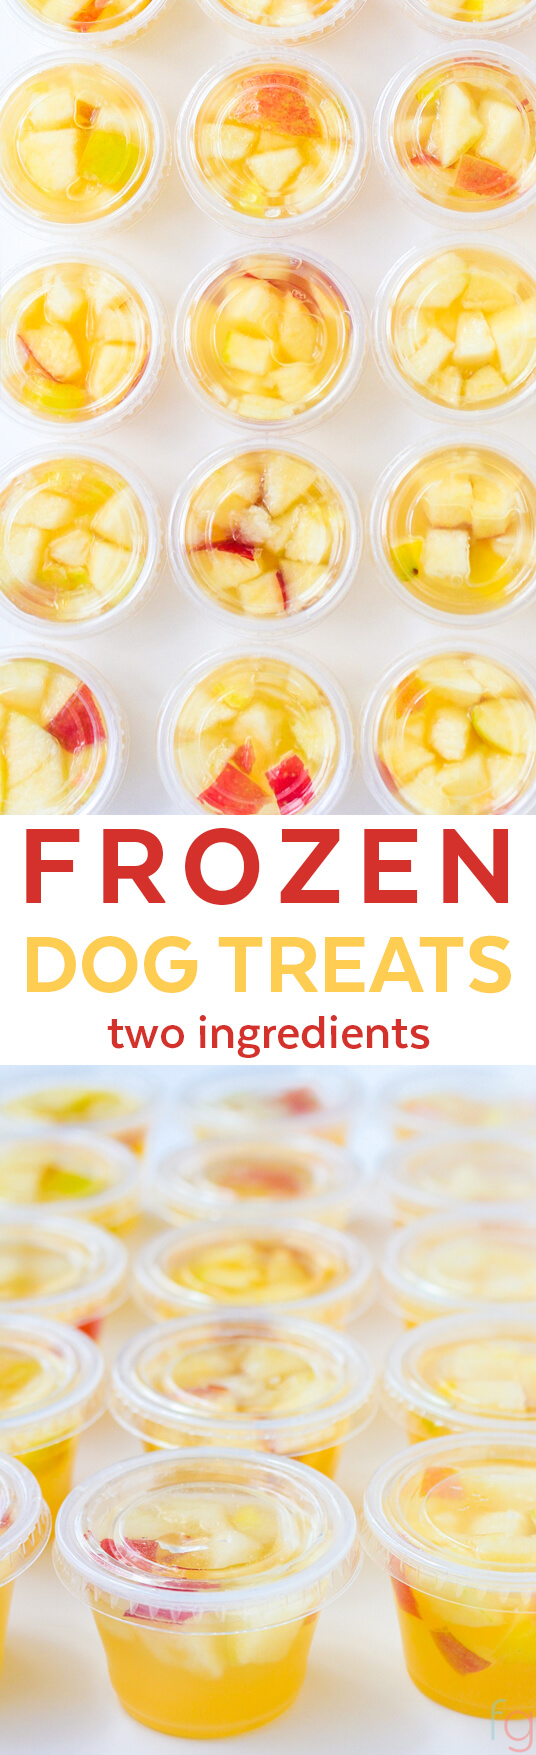 Frozen Dog Treats Homemade - Summer Dog Treats Frozen Ice Cubes - Homemade Dog Treats Easy - DIY Dog Treats Healthy - Chicken Apple Dog Treats - Chicken Broth Dog Treats Frozen - Apple Dog Treats Homemade